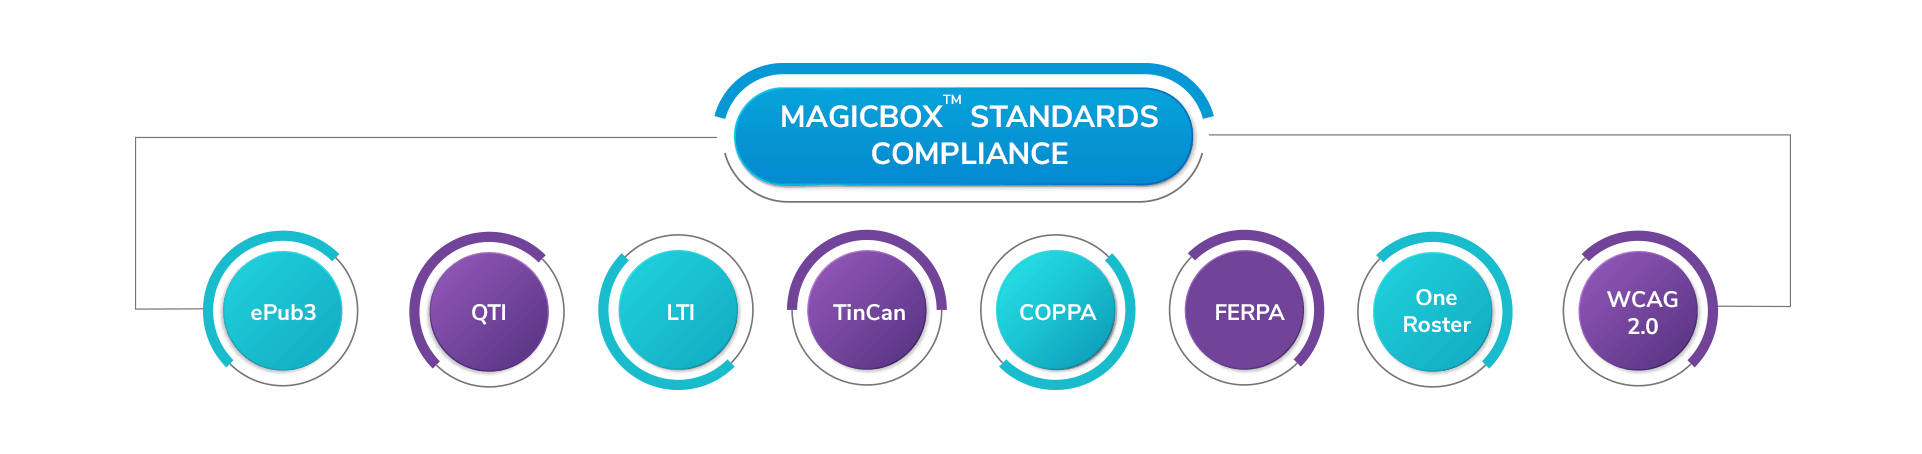 MagicBox™ standard compliance